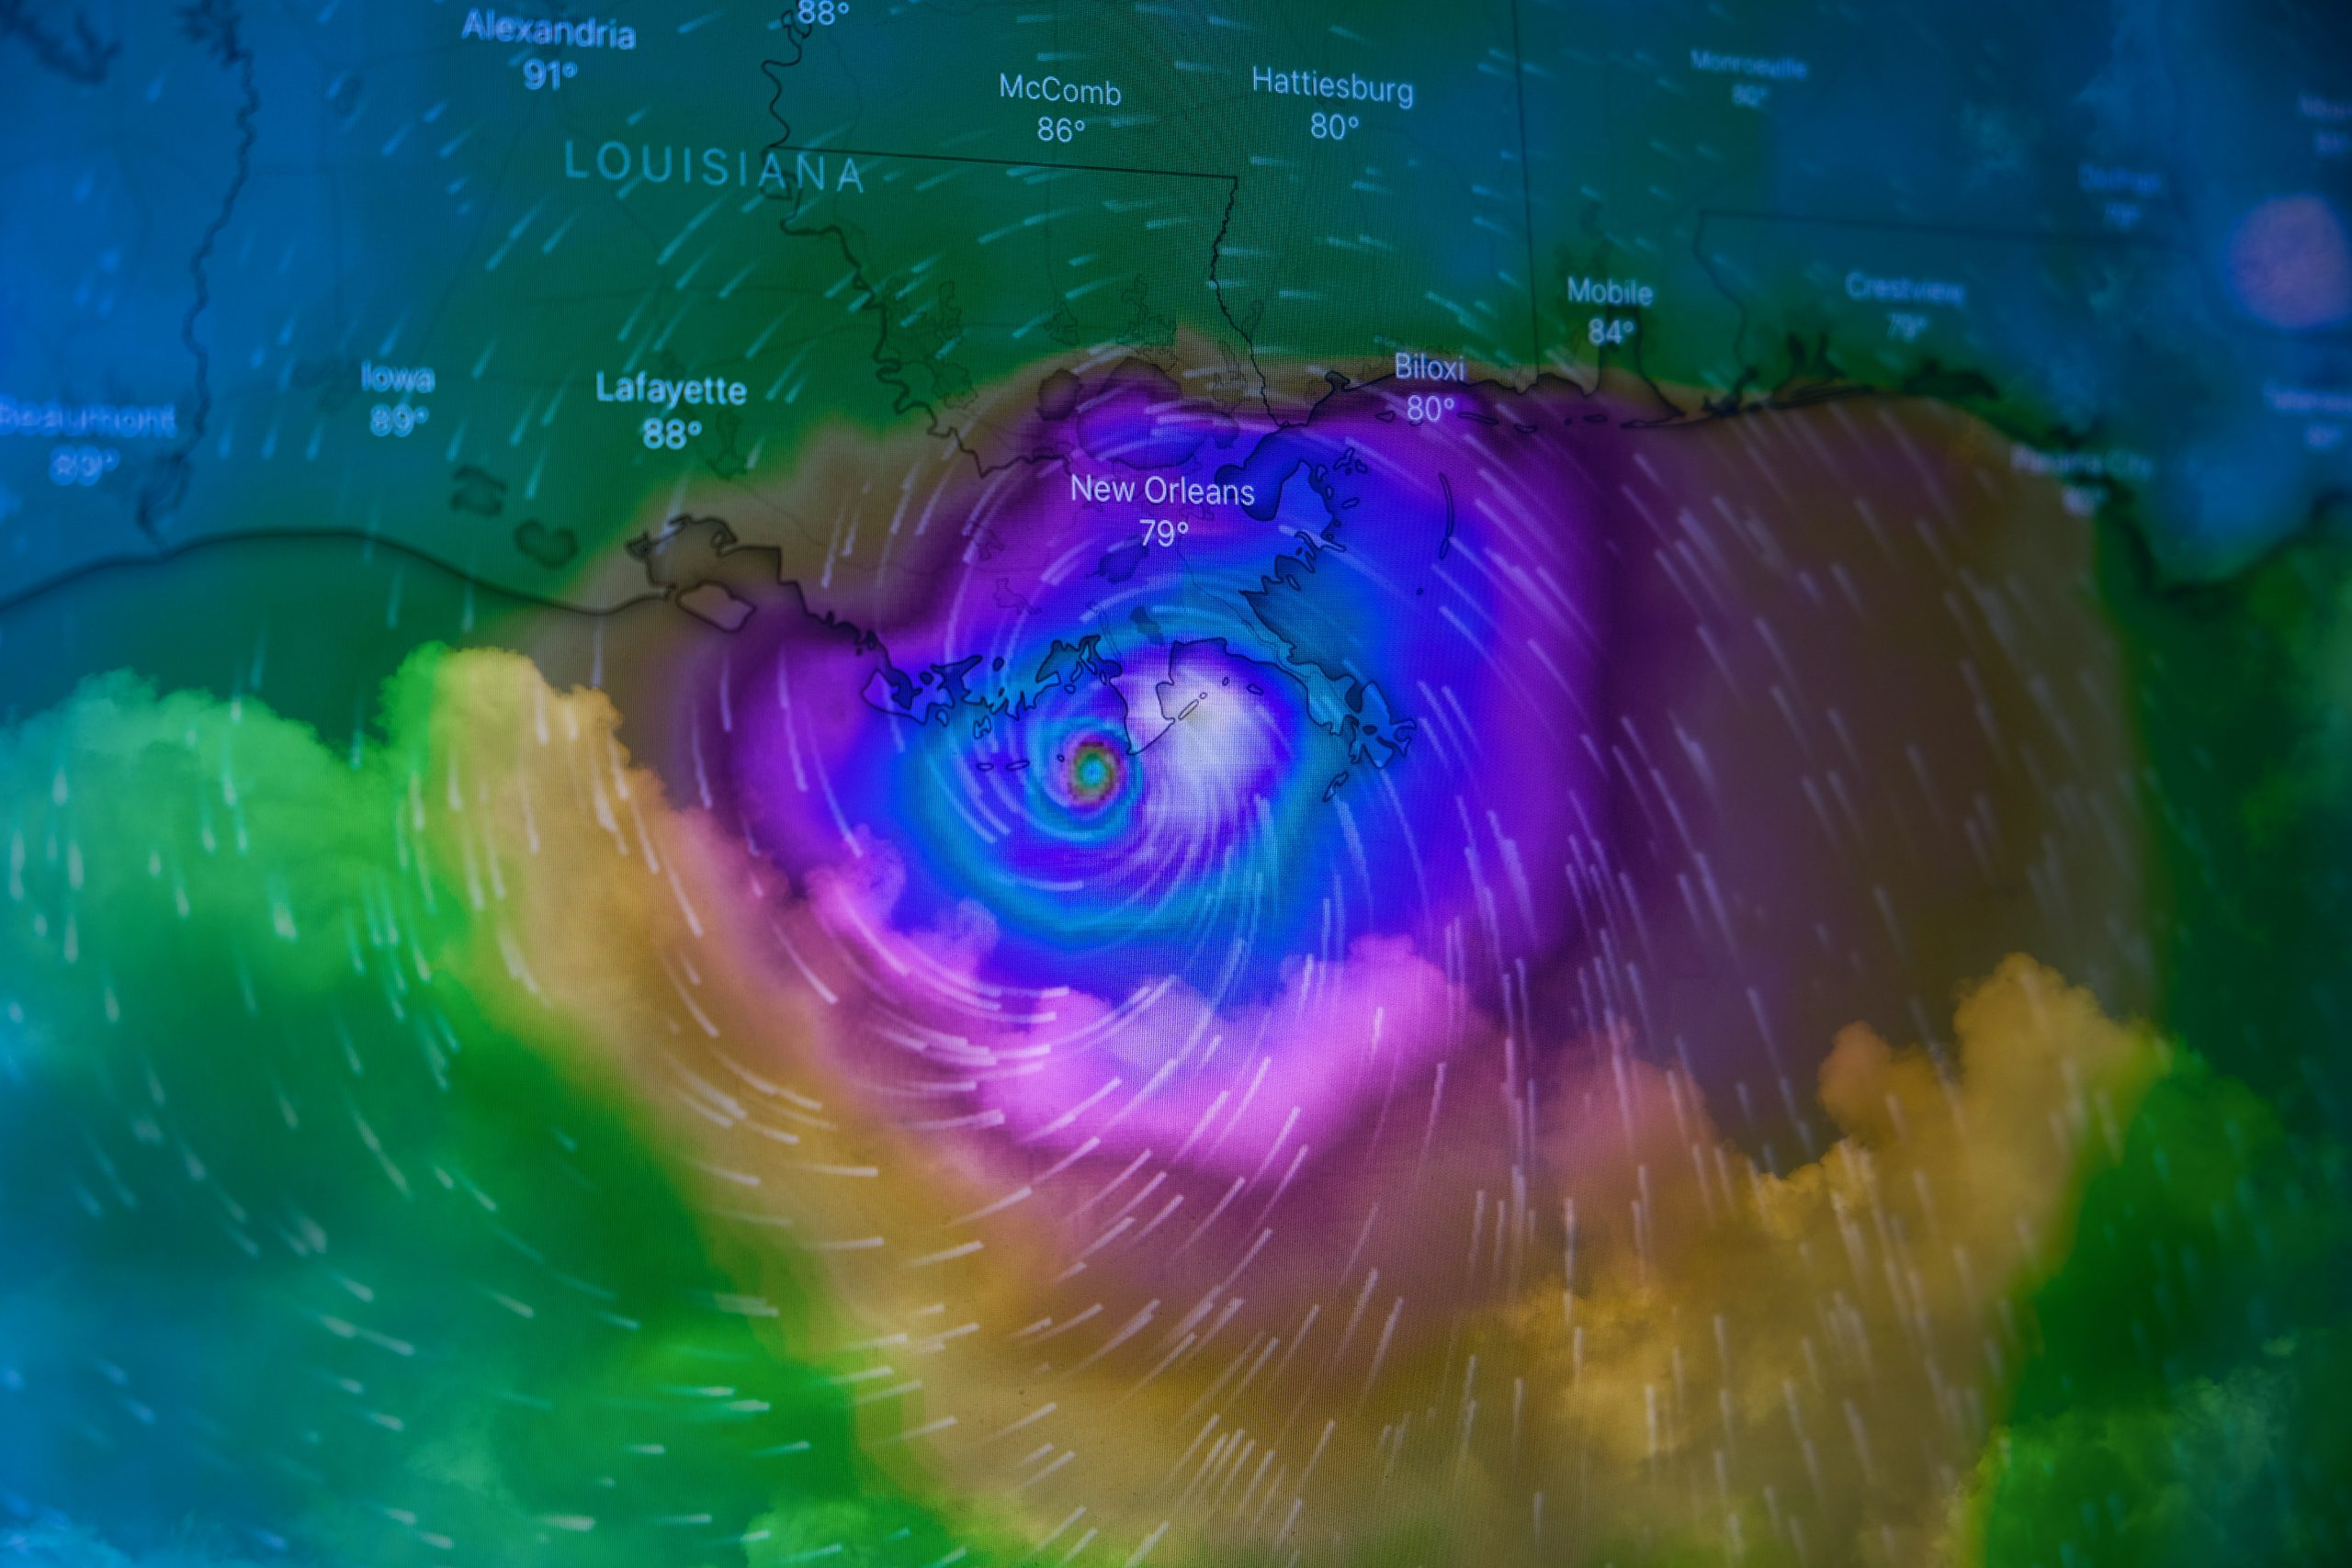 Image: A multicolored radar map shows Hurricane Ida looming over New Orleans.